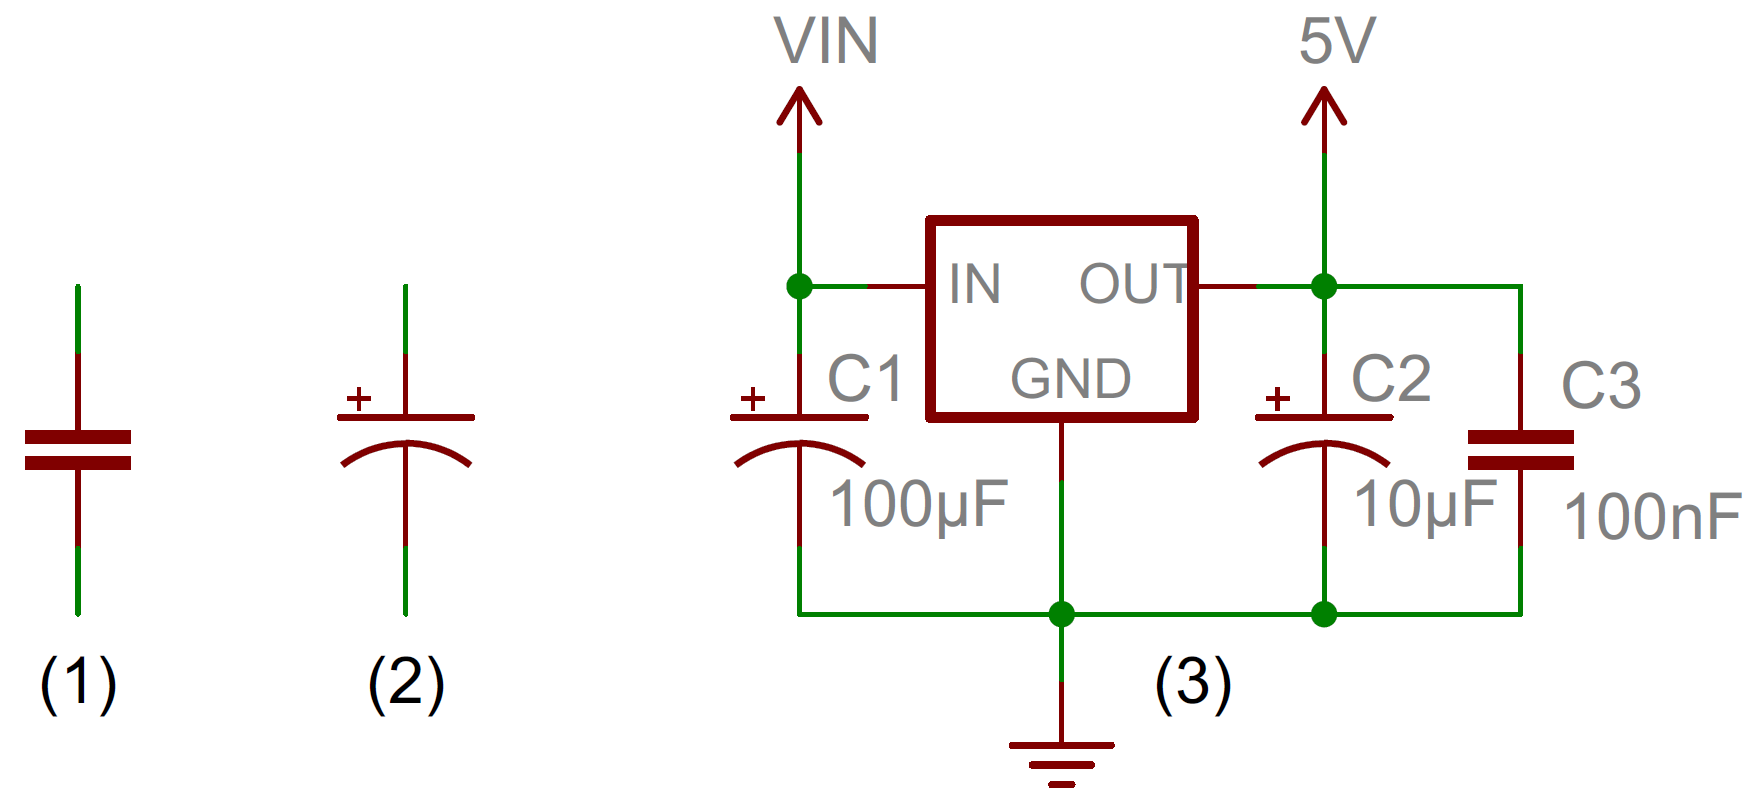 Capacitors How To Solve A Series Circuit 3 Steps With Pictures Capacitor Symbols